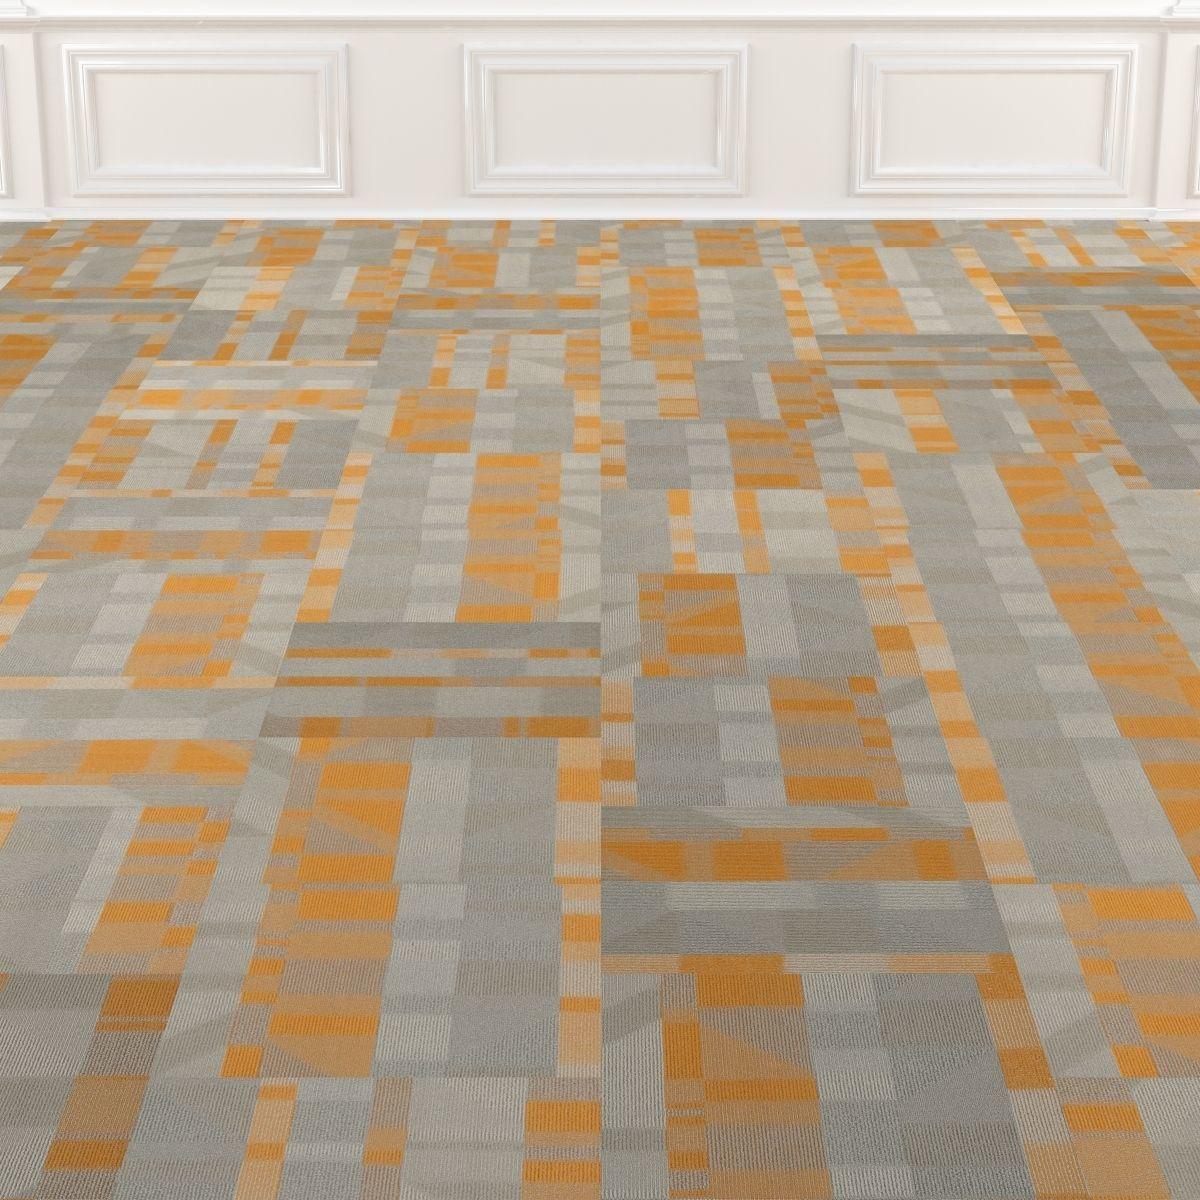 wall to wall carpet. Wall To Carpet Tile No 1 3d Model Max Obj Fbx Mtl Unitypackage